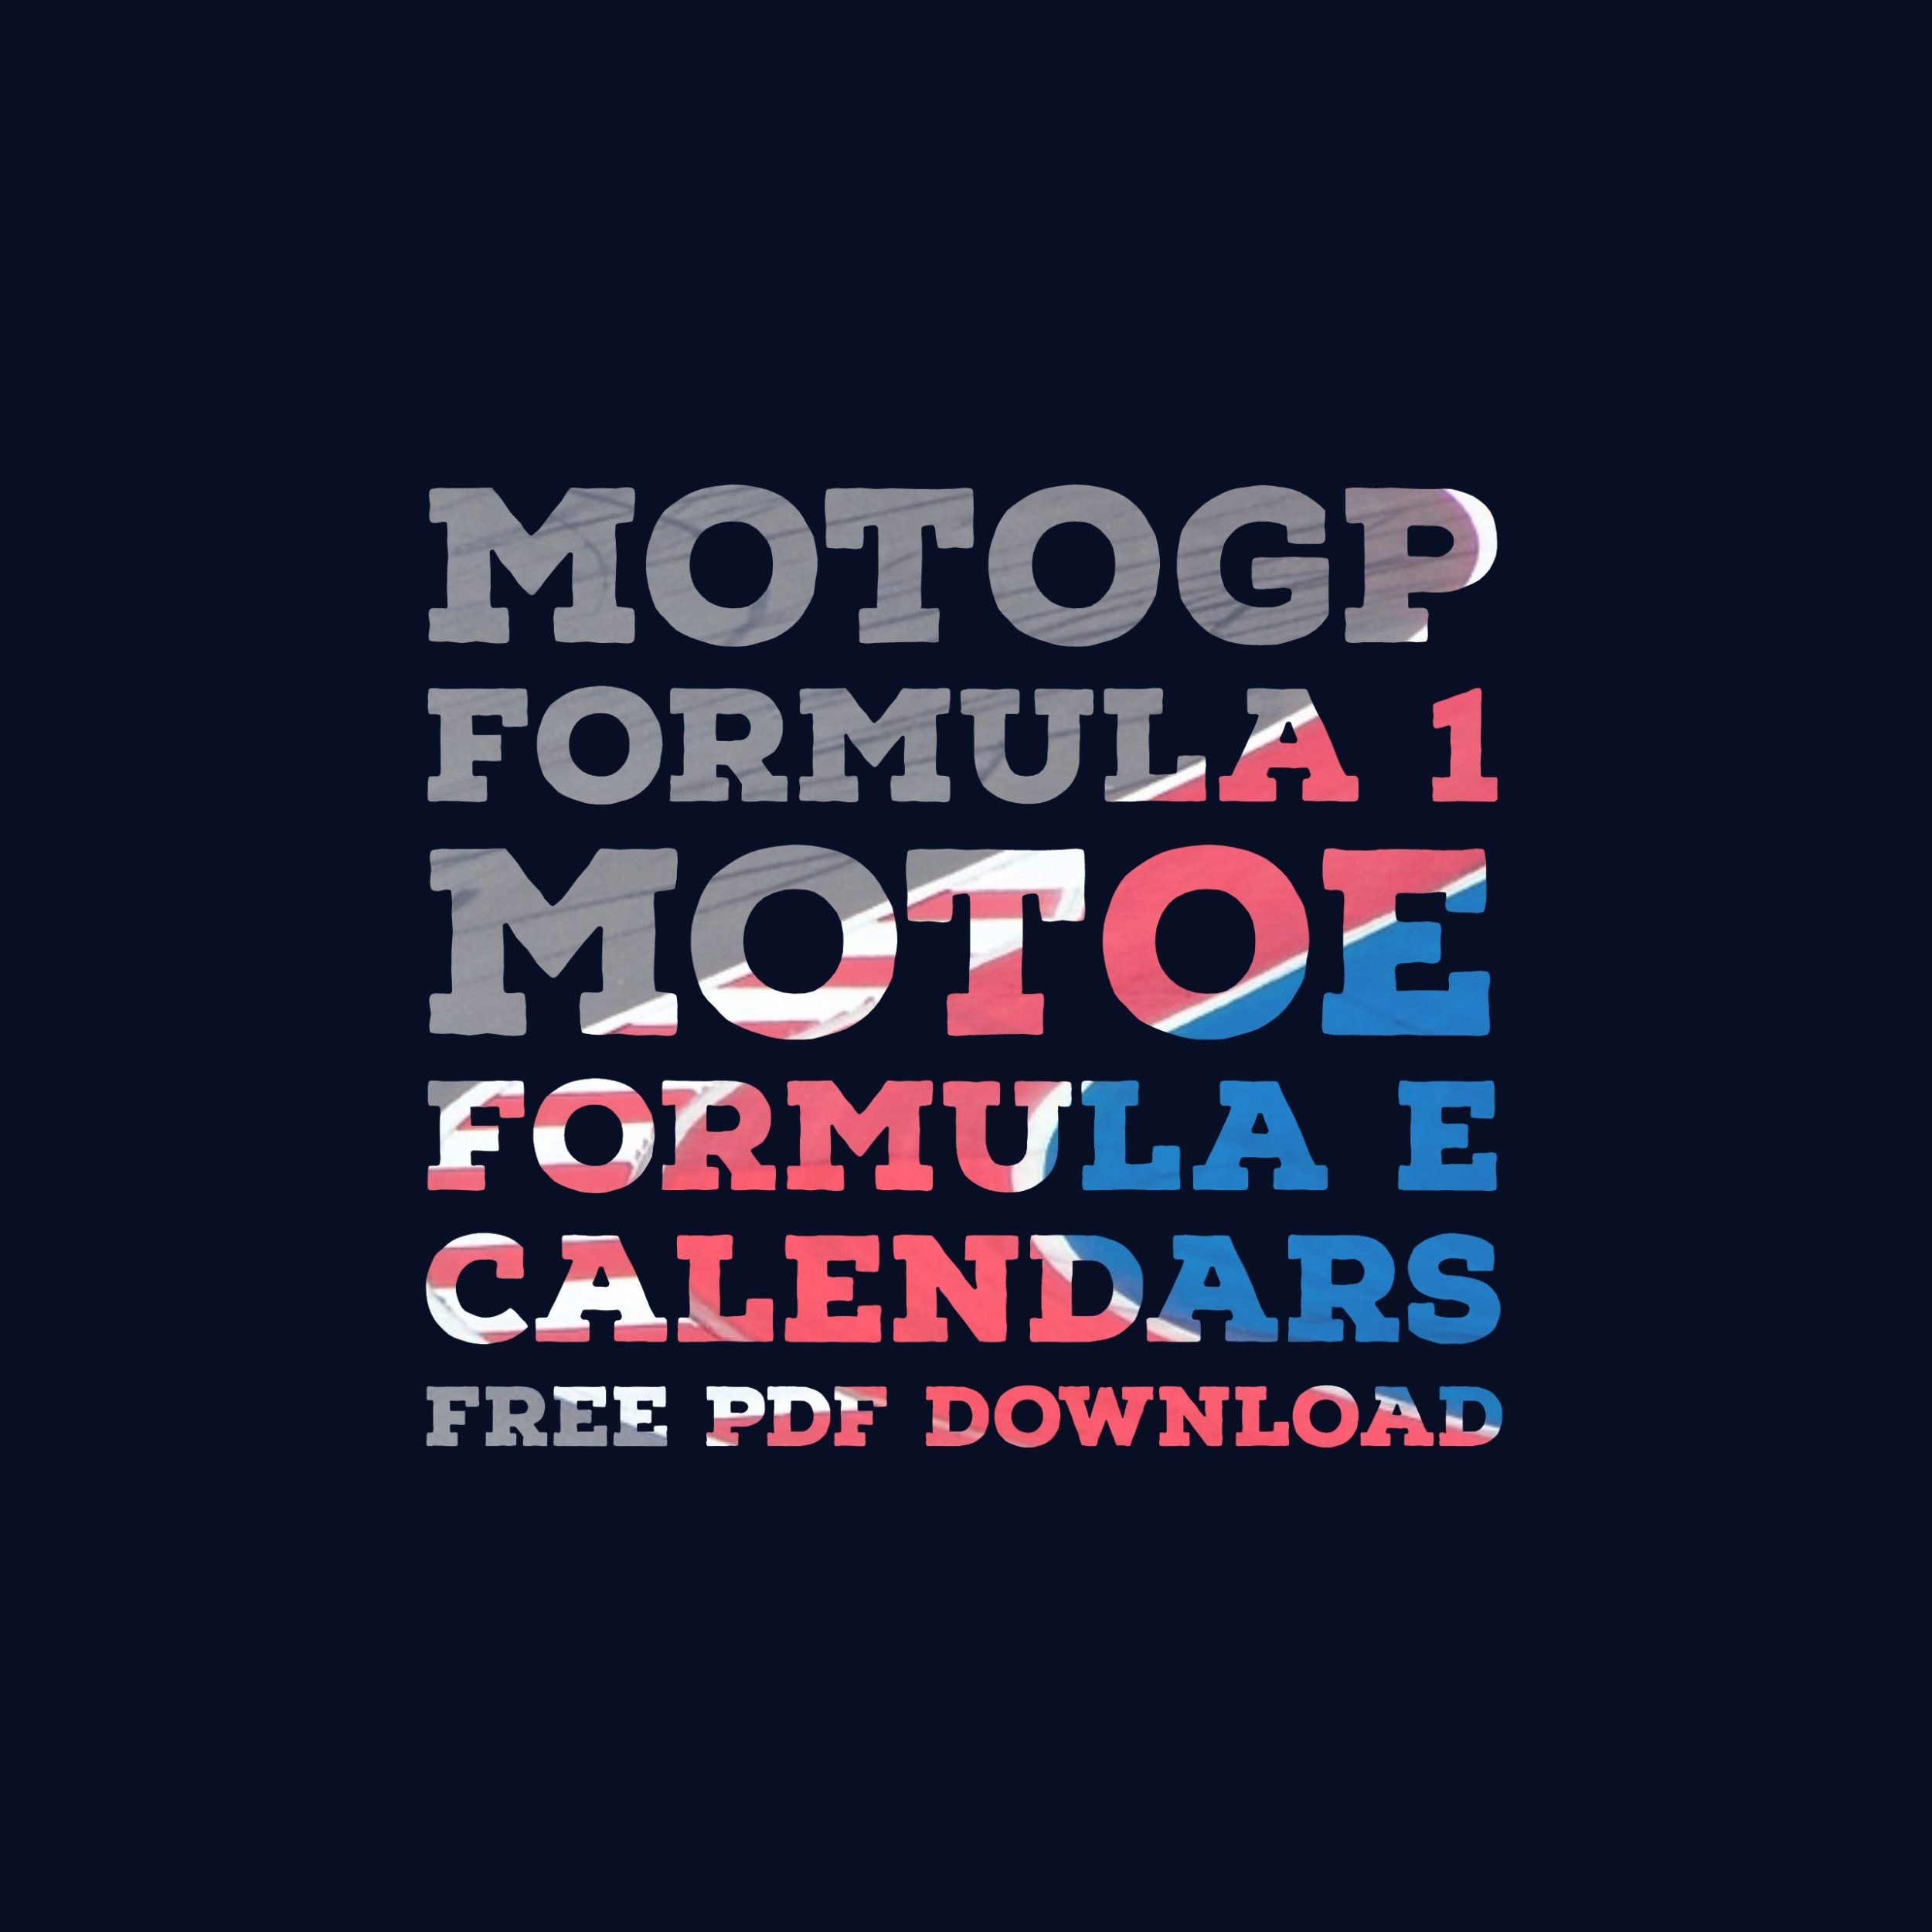 Motogp, Formula 1, Formulae, Motoe 2019 Calendars | Rtr Sports Formula E Calendar 2019 Download